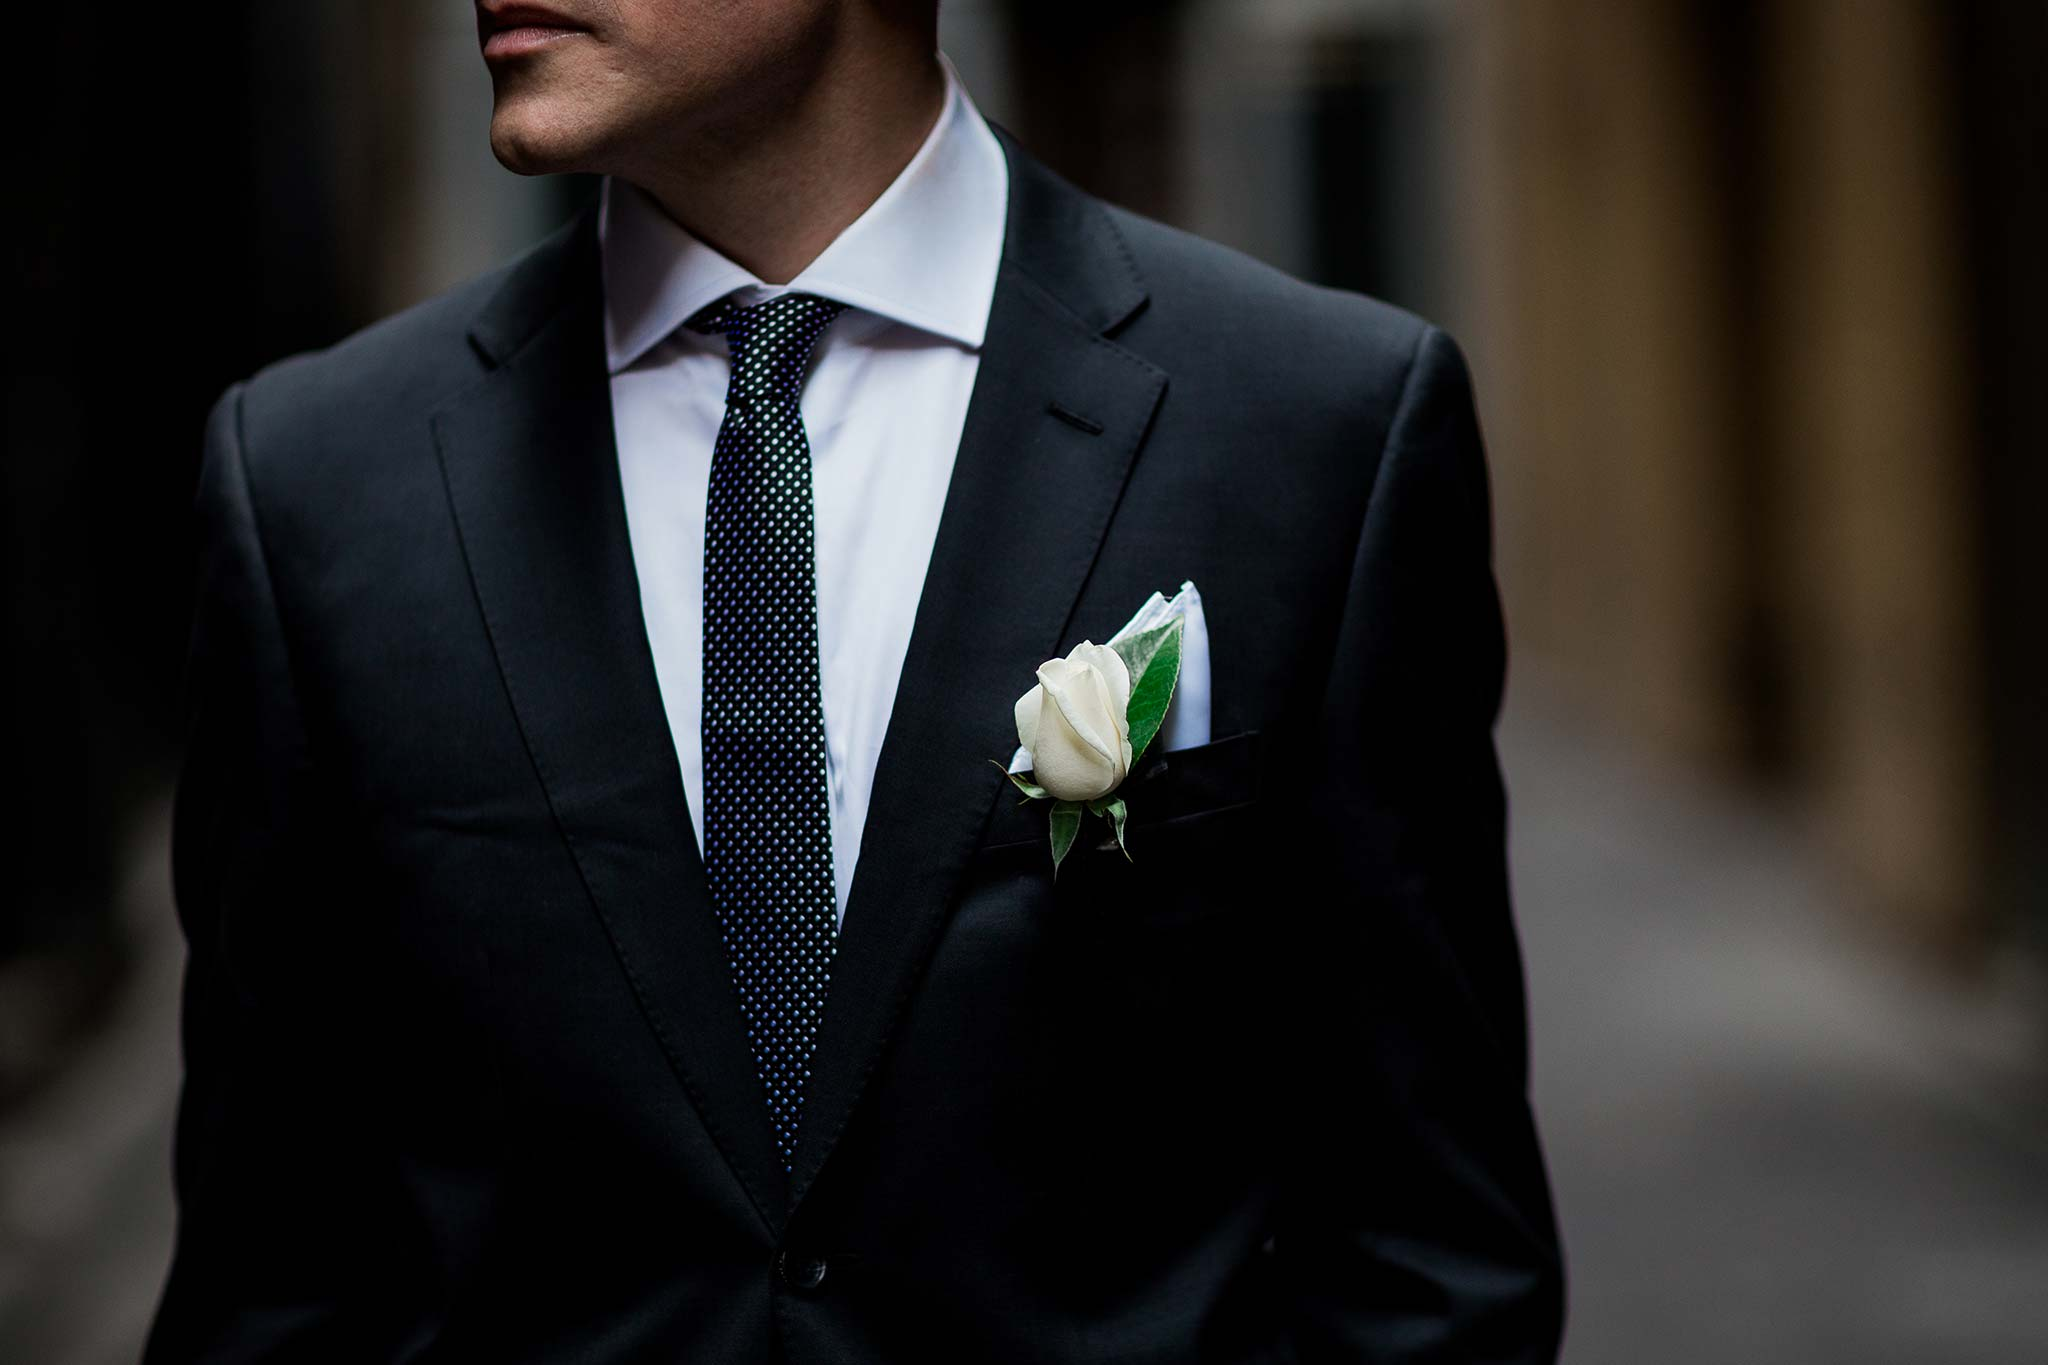 melbourne-flinders-lane-wedding-groom-flower